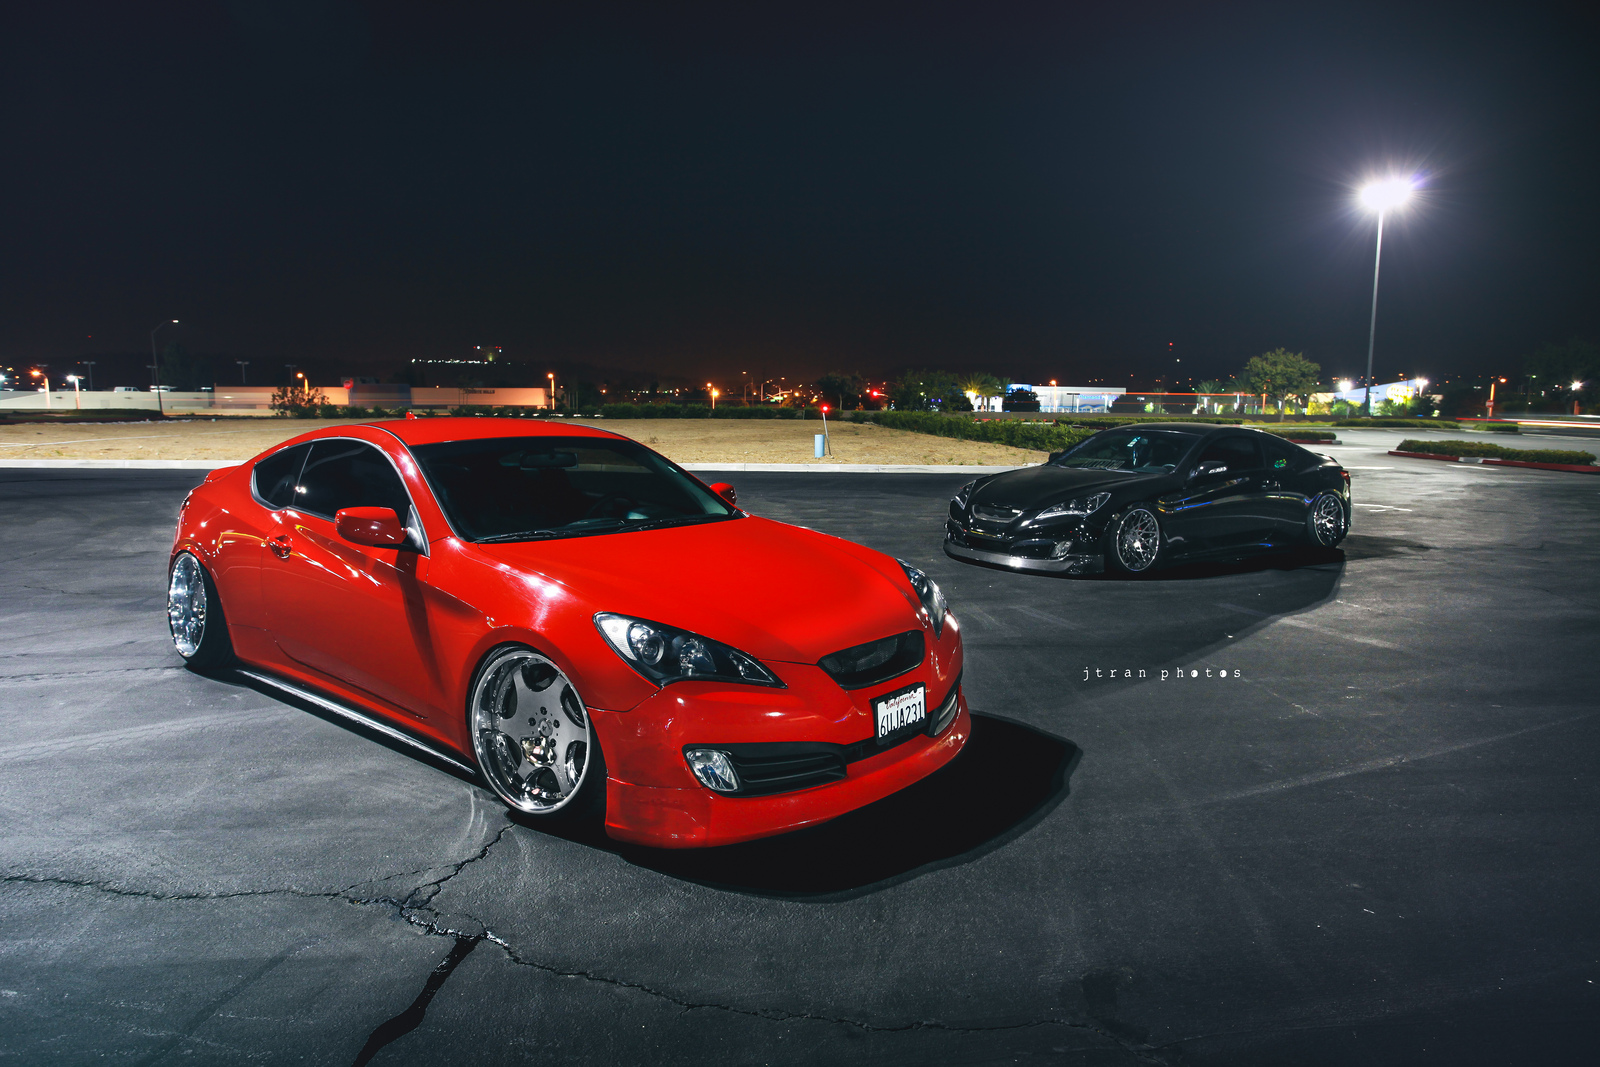 jonnntran 39 s hyundai genesis coupe gctuner hyundai. Black Bedroom Furniture Sets. Home Design Ideas